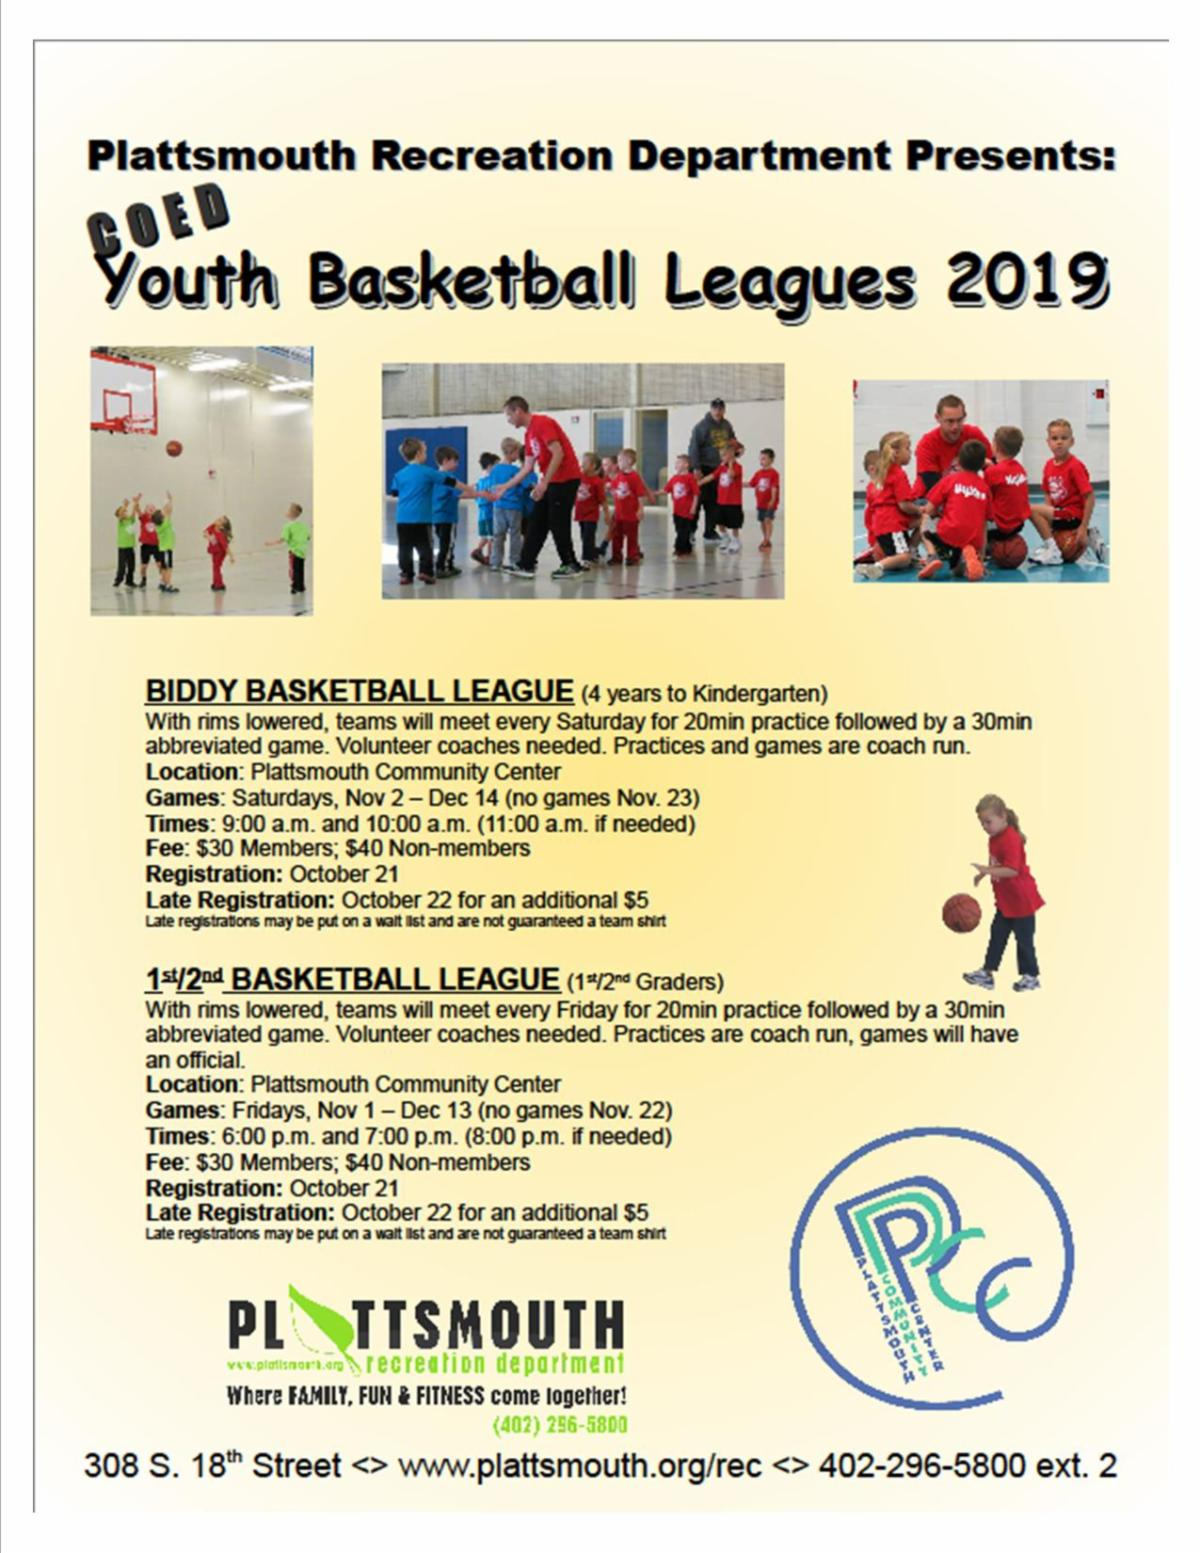 youthbb2019